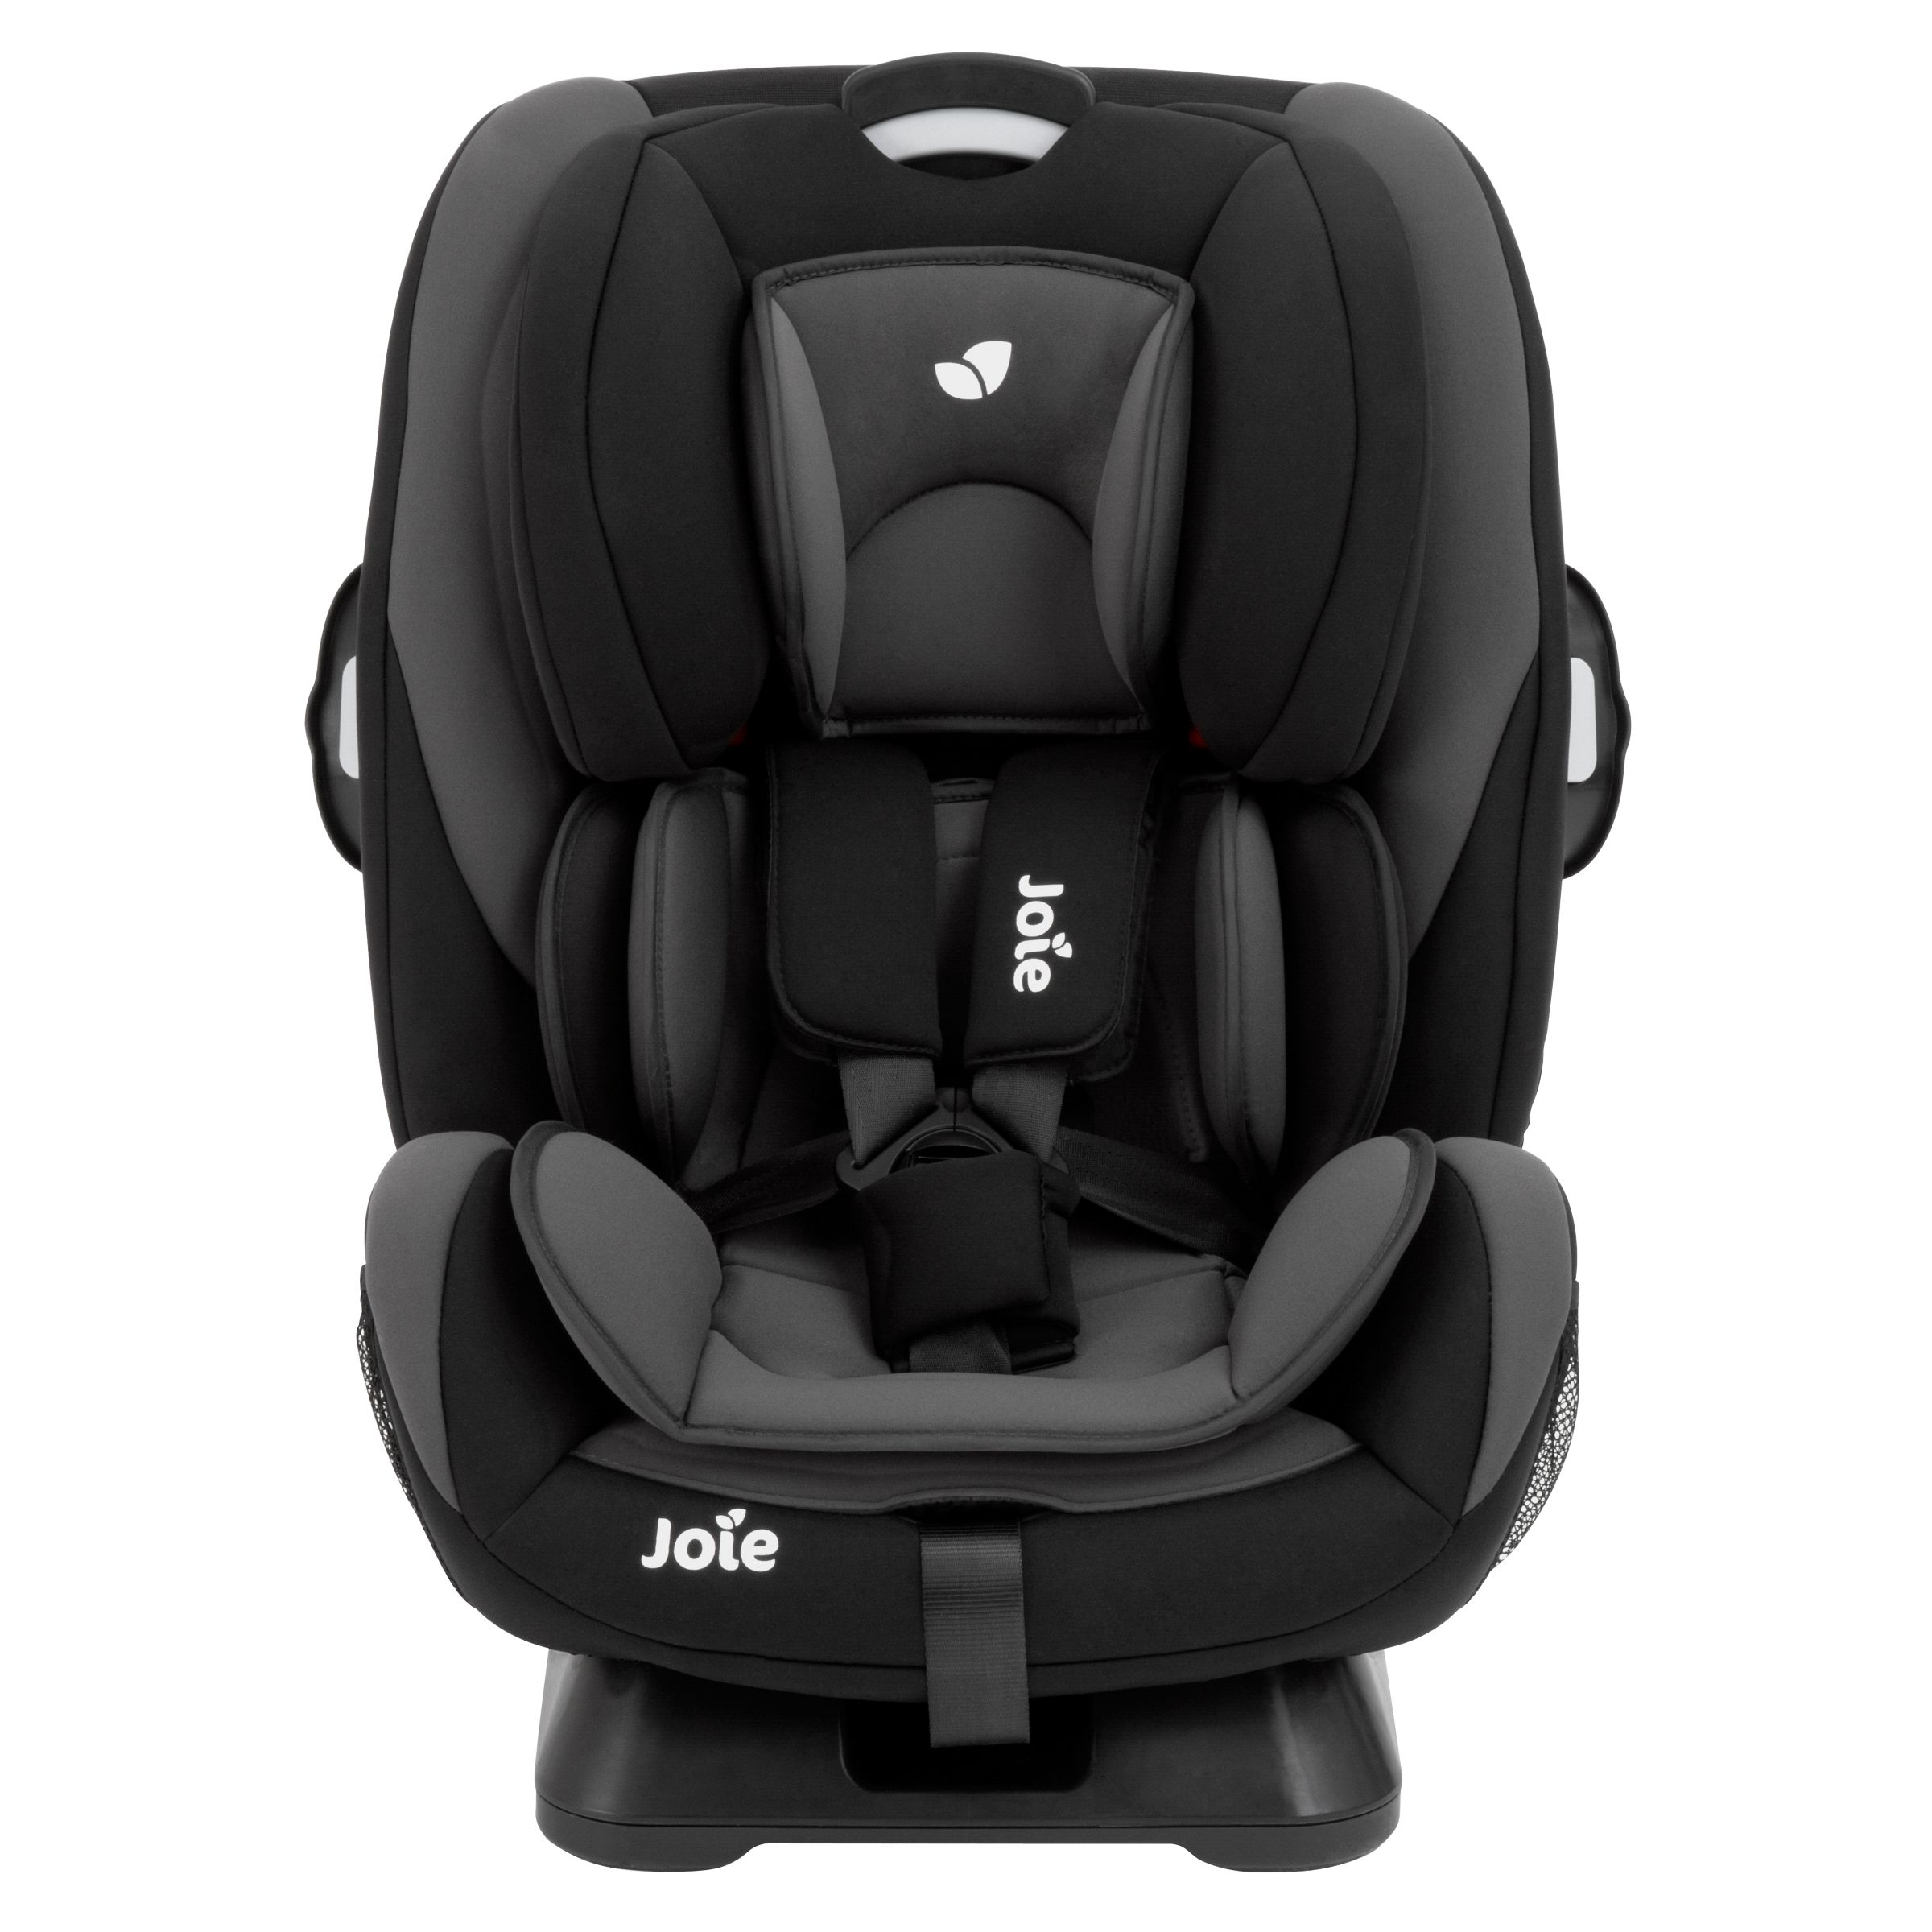 Joie Baby Joie Baby Every Stage Group 0+/1/2/3 Car Seat, Two Tone Black